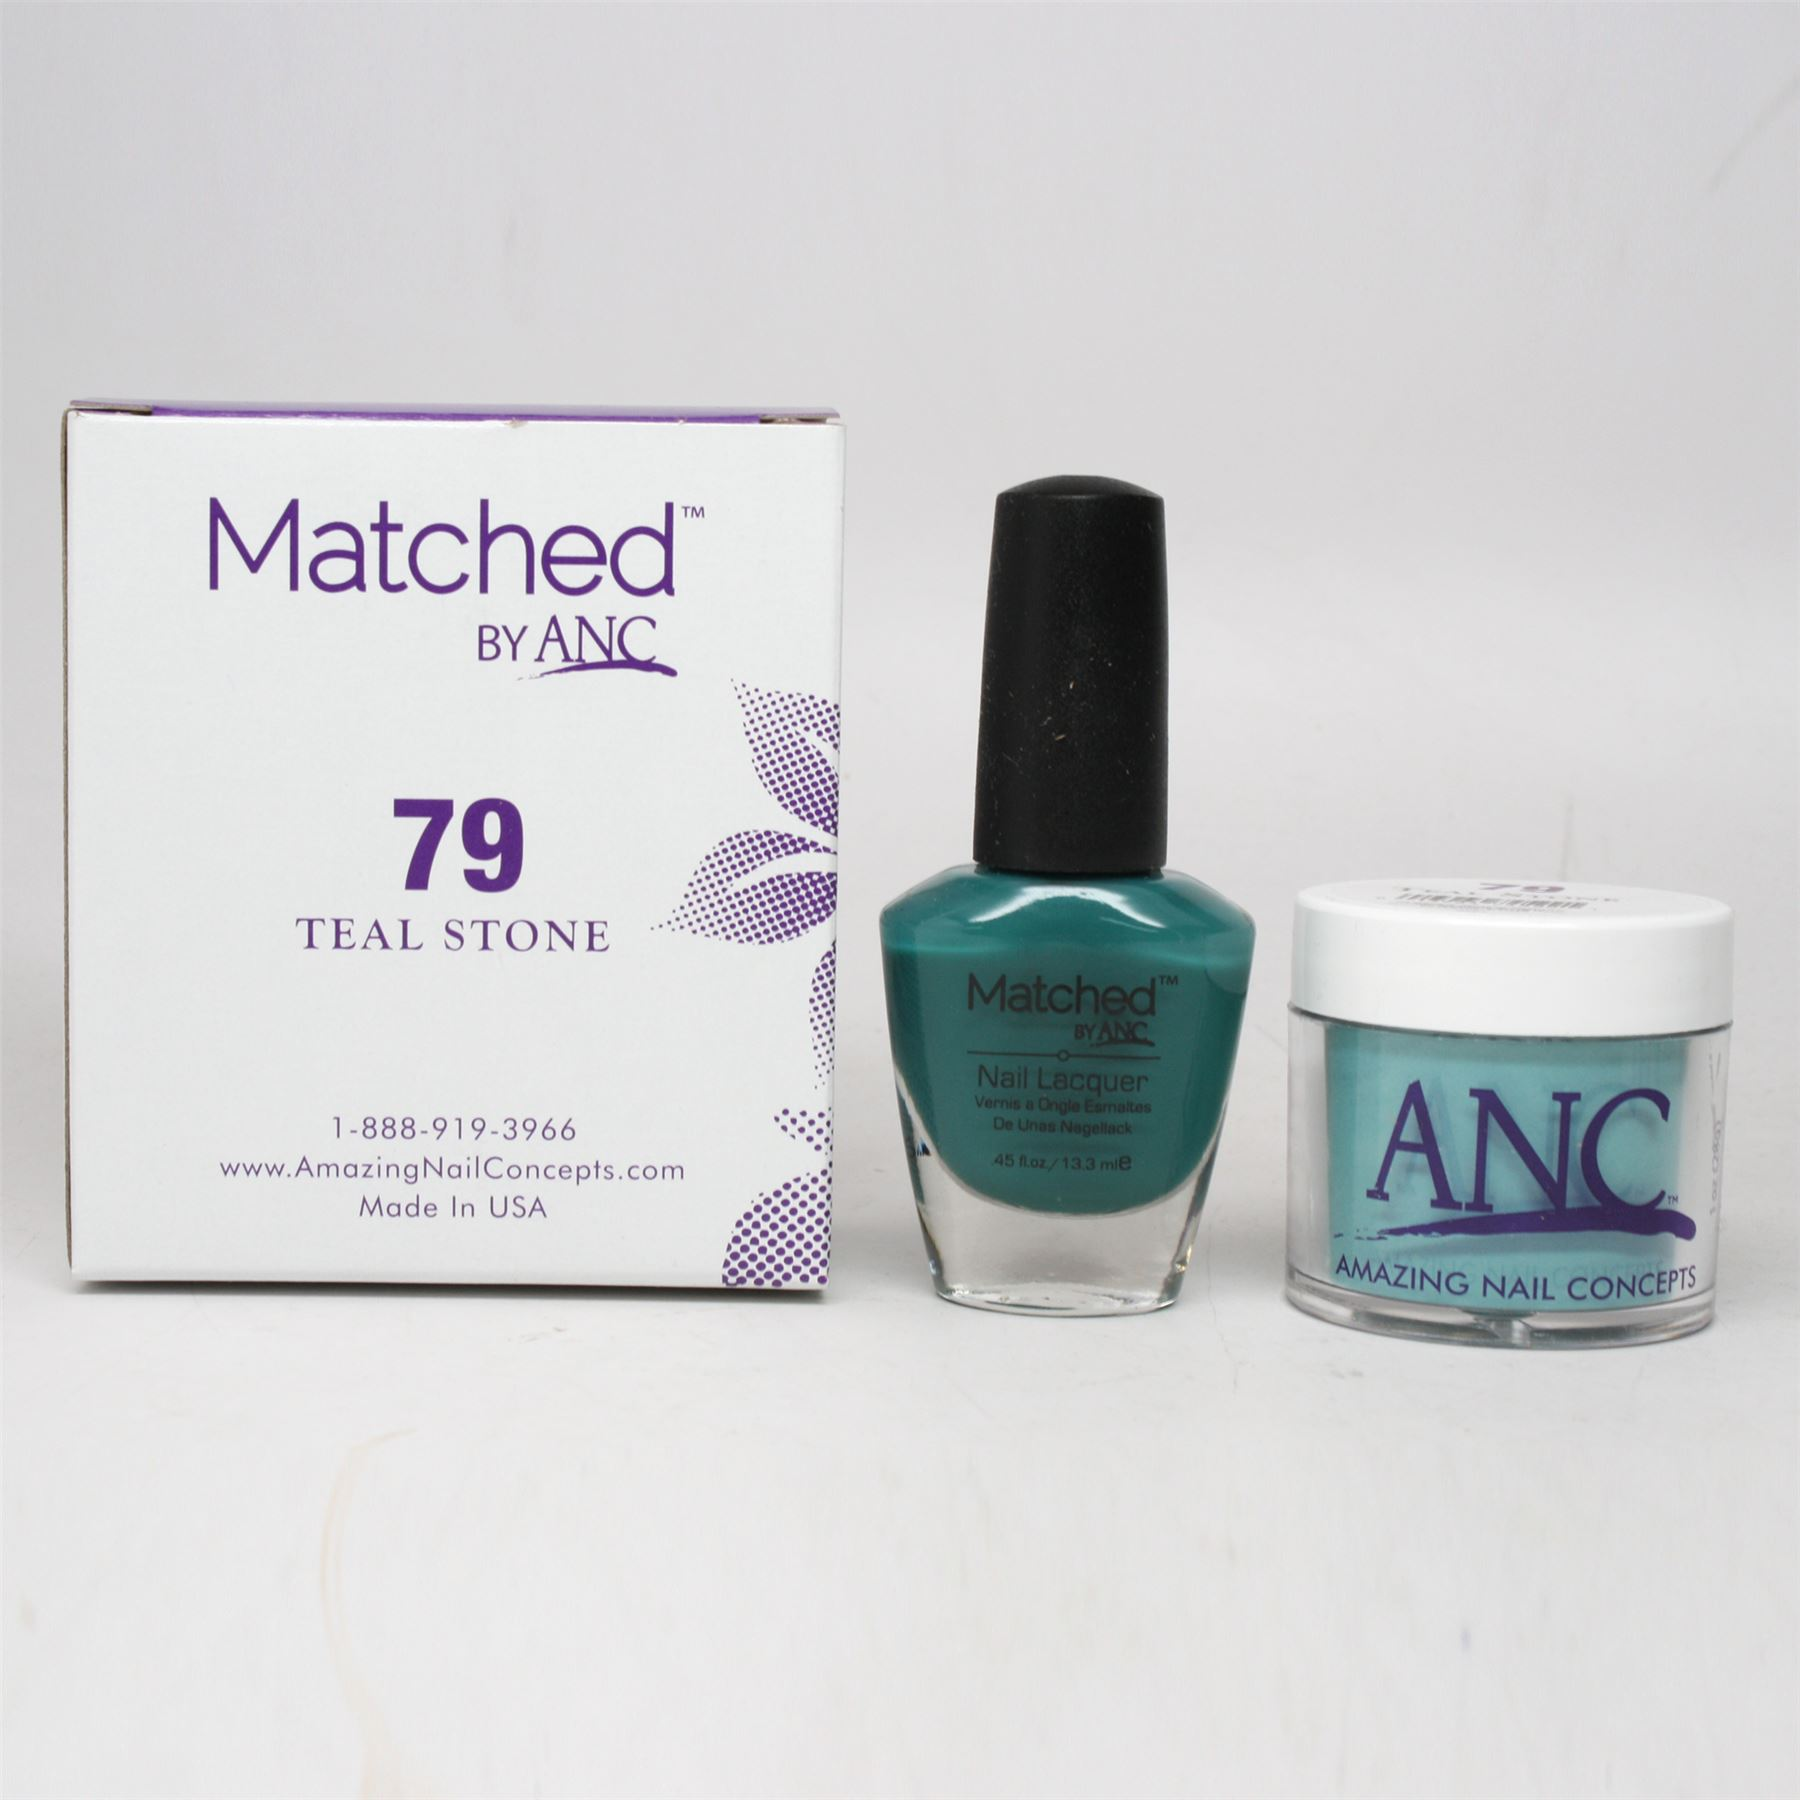 ANC Amazing Nail Concepts Matched Kit # 79 Teal Stone